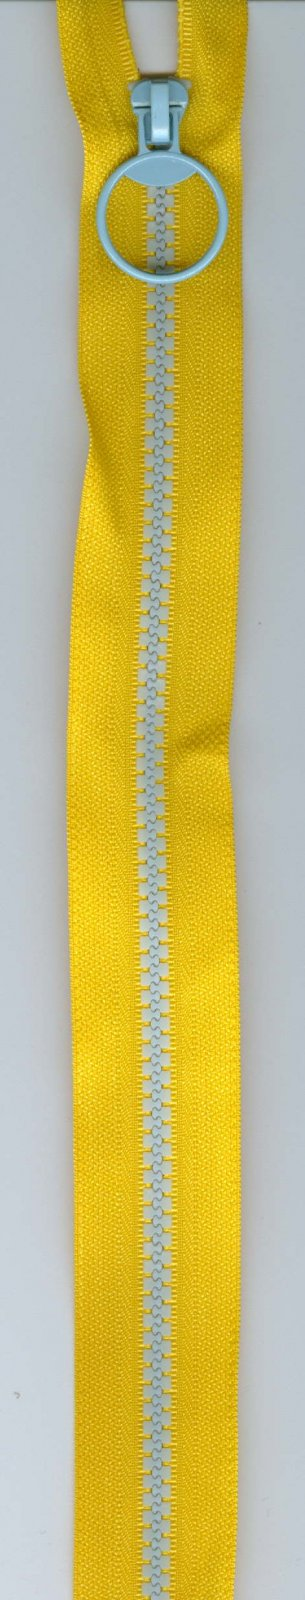 16 Separating Zipper #5 - Yellow with Blue Teeth